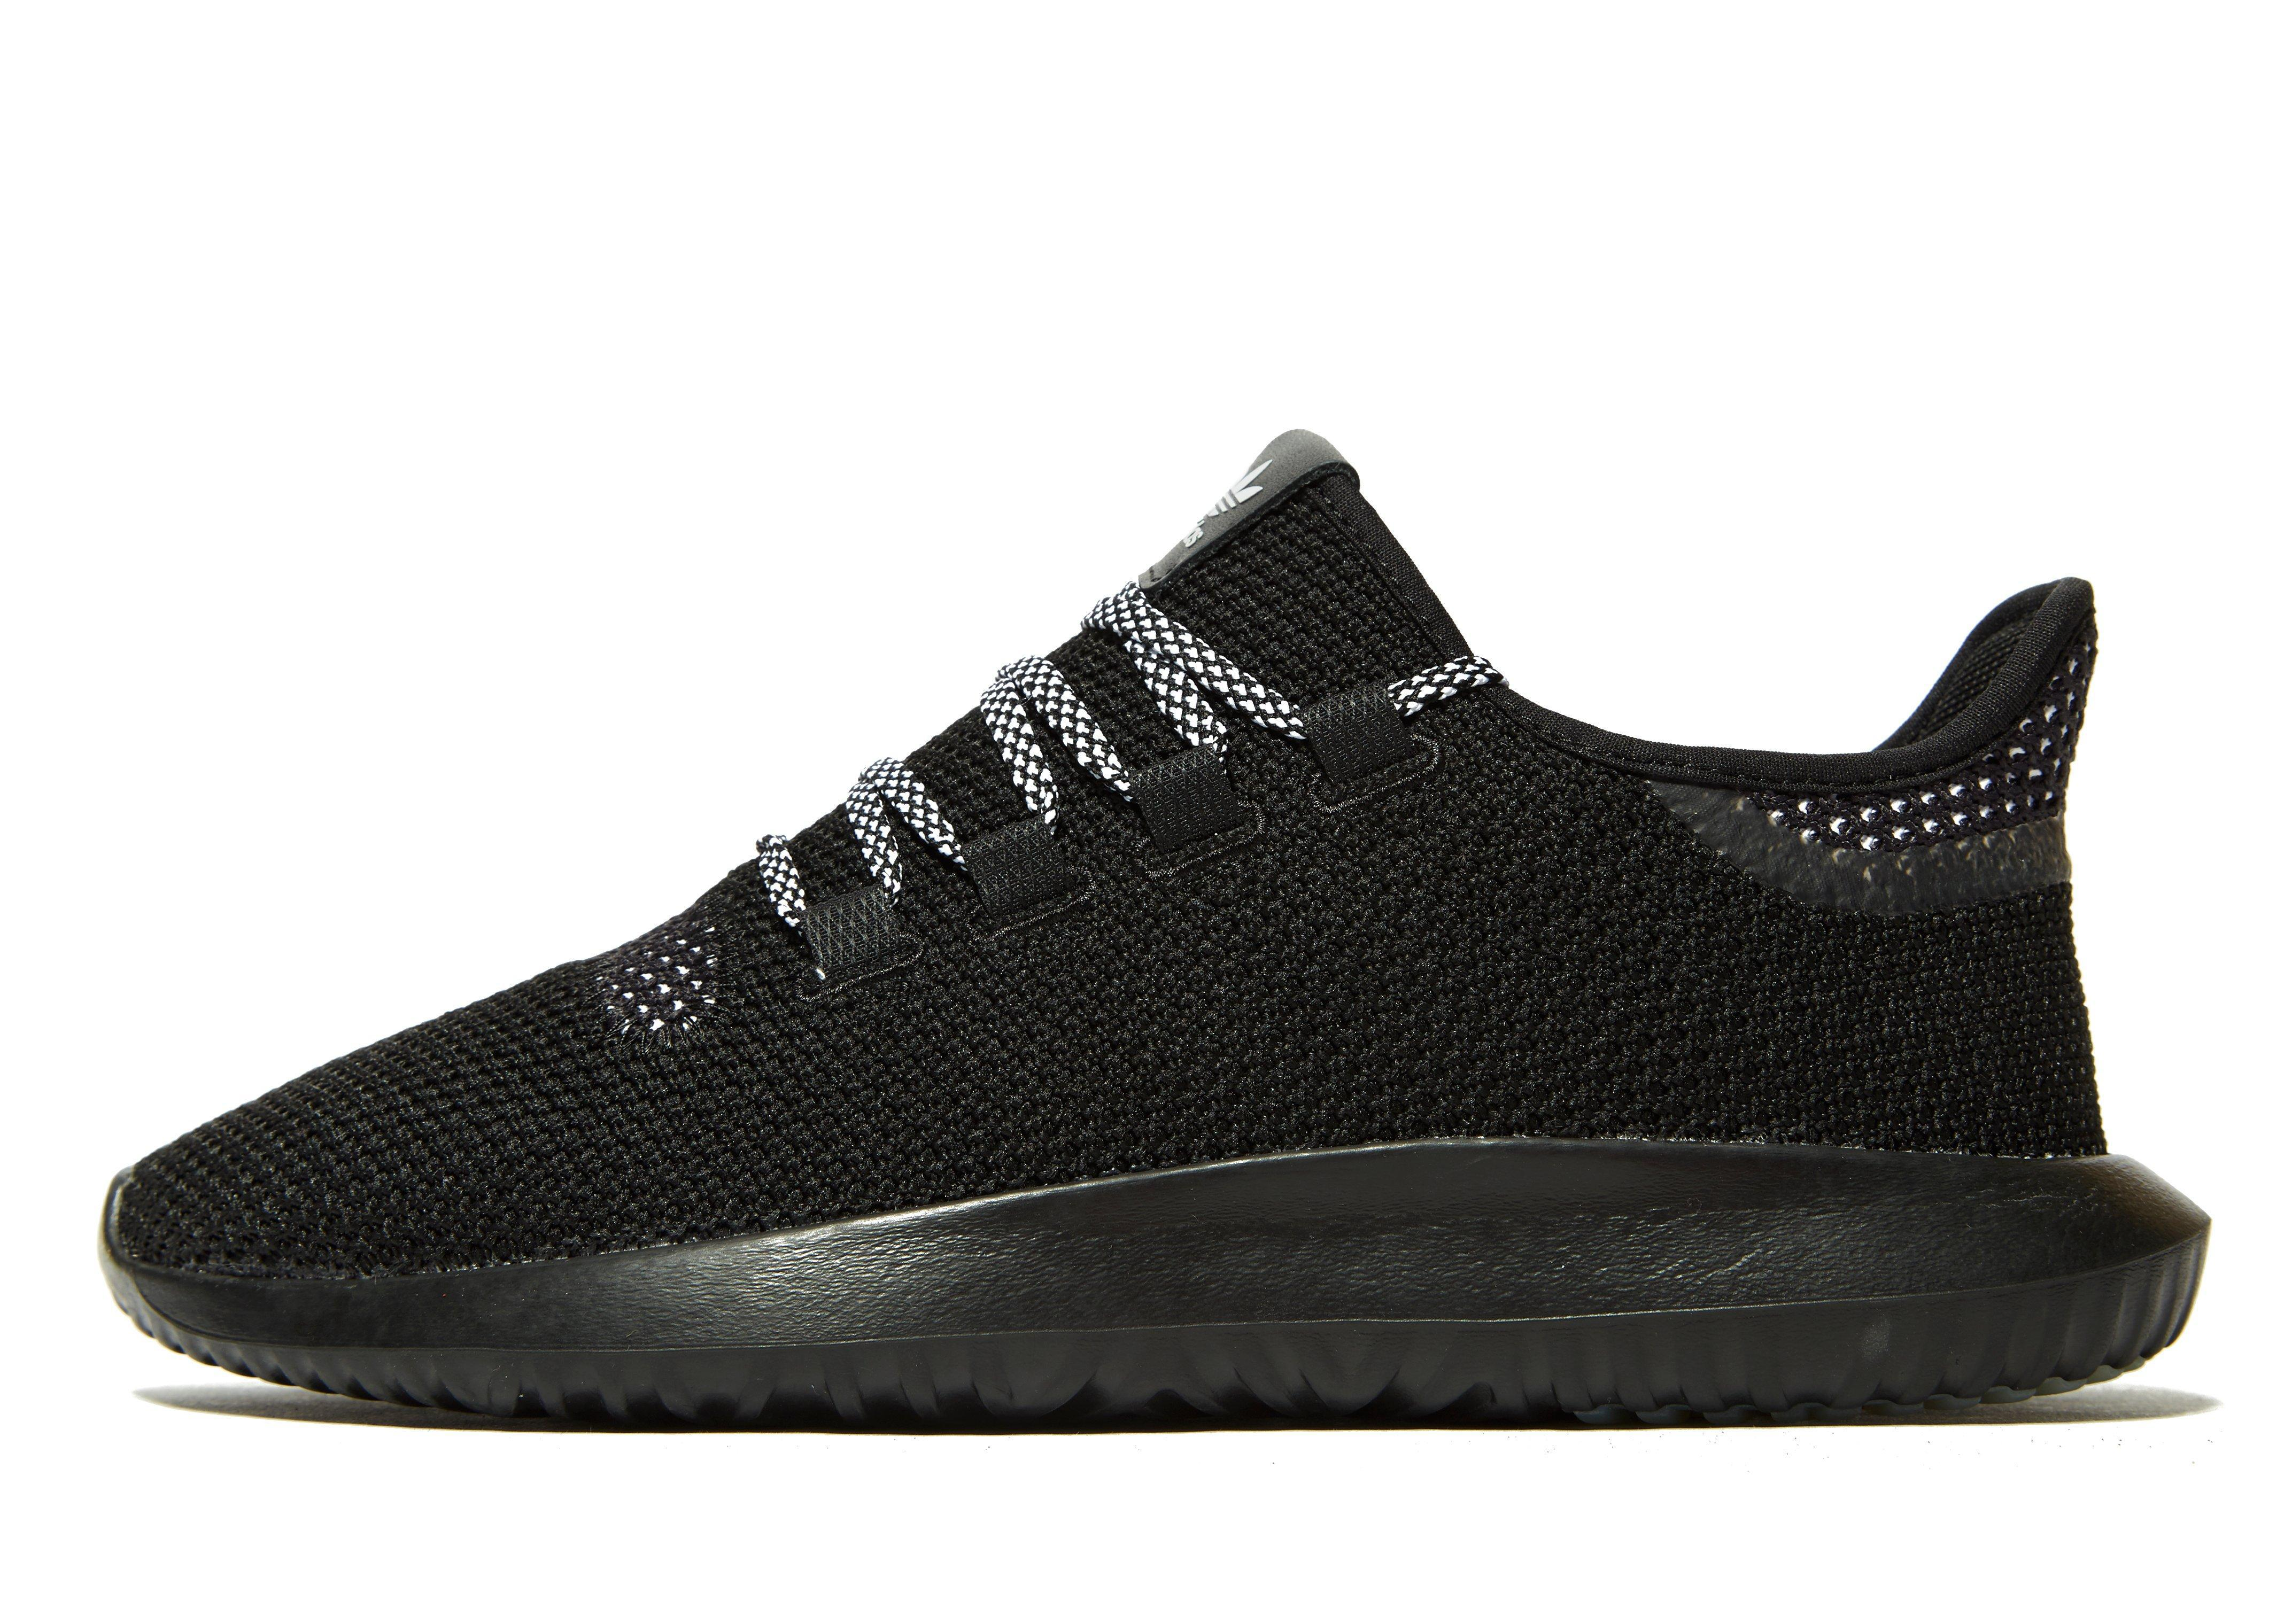 Adidas Originals Shoes TUBULAR SHADOW KNIT